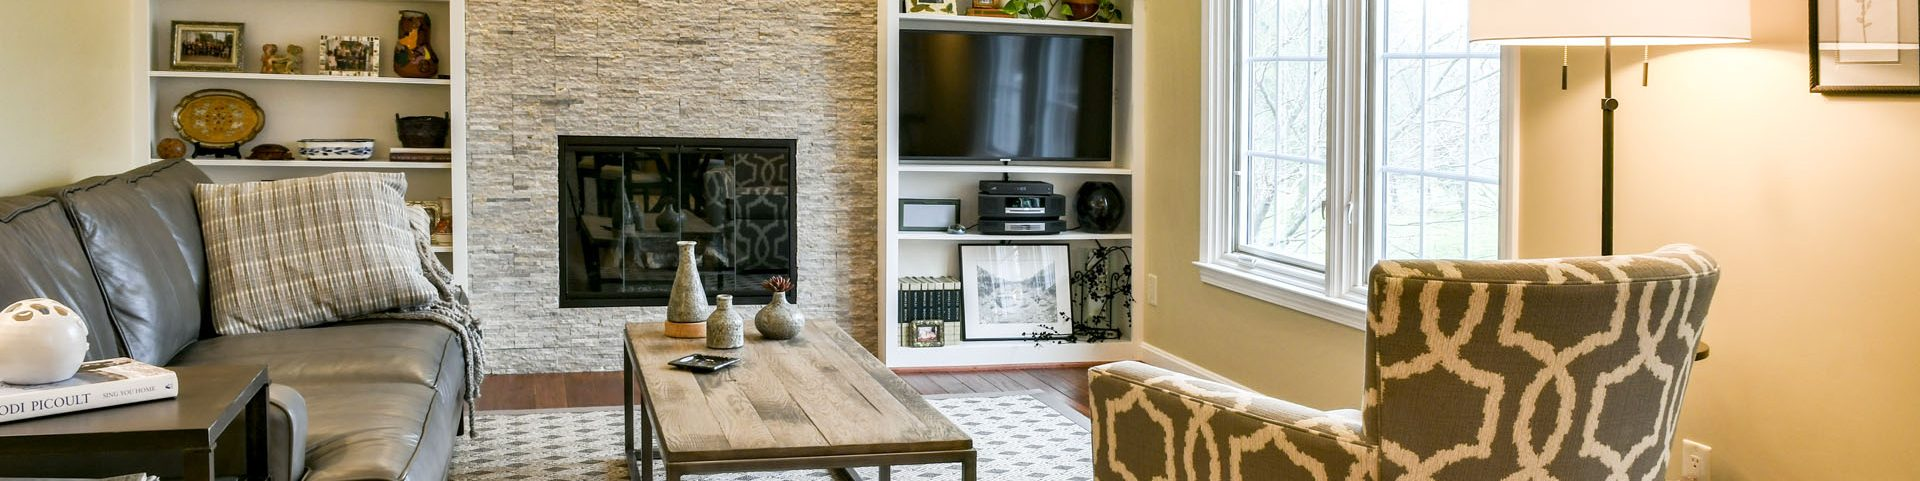 Louisville Home Staging, Louisville Interior Design, Louisville Renovation Design, Fireplace, stacked stone fireplace, built-in shelving, area rug, accessories, lighting, hardwood flooring